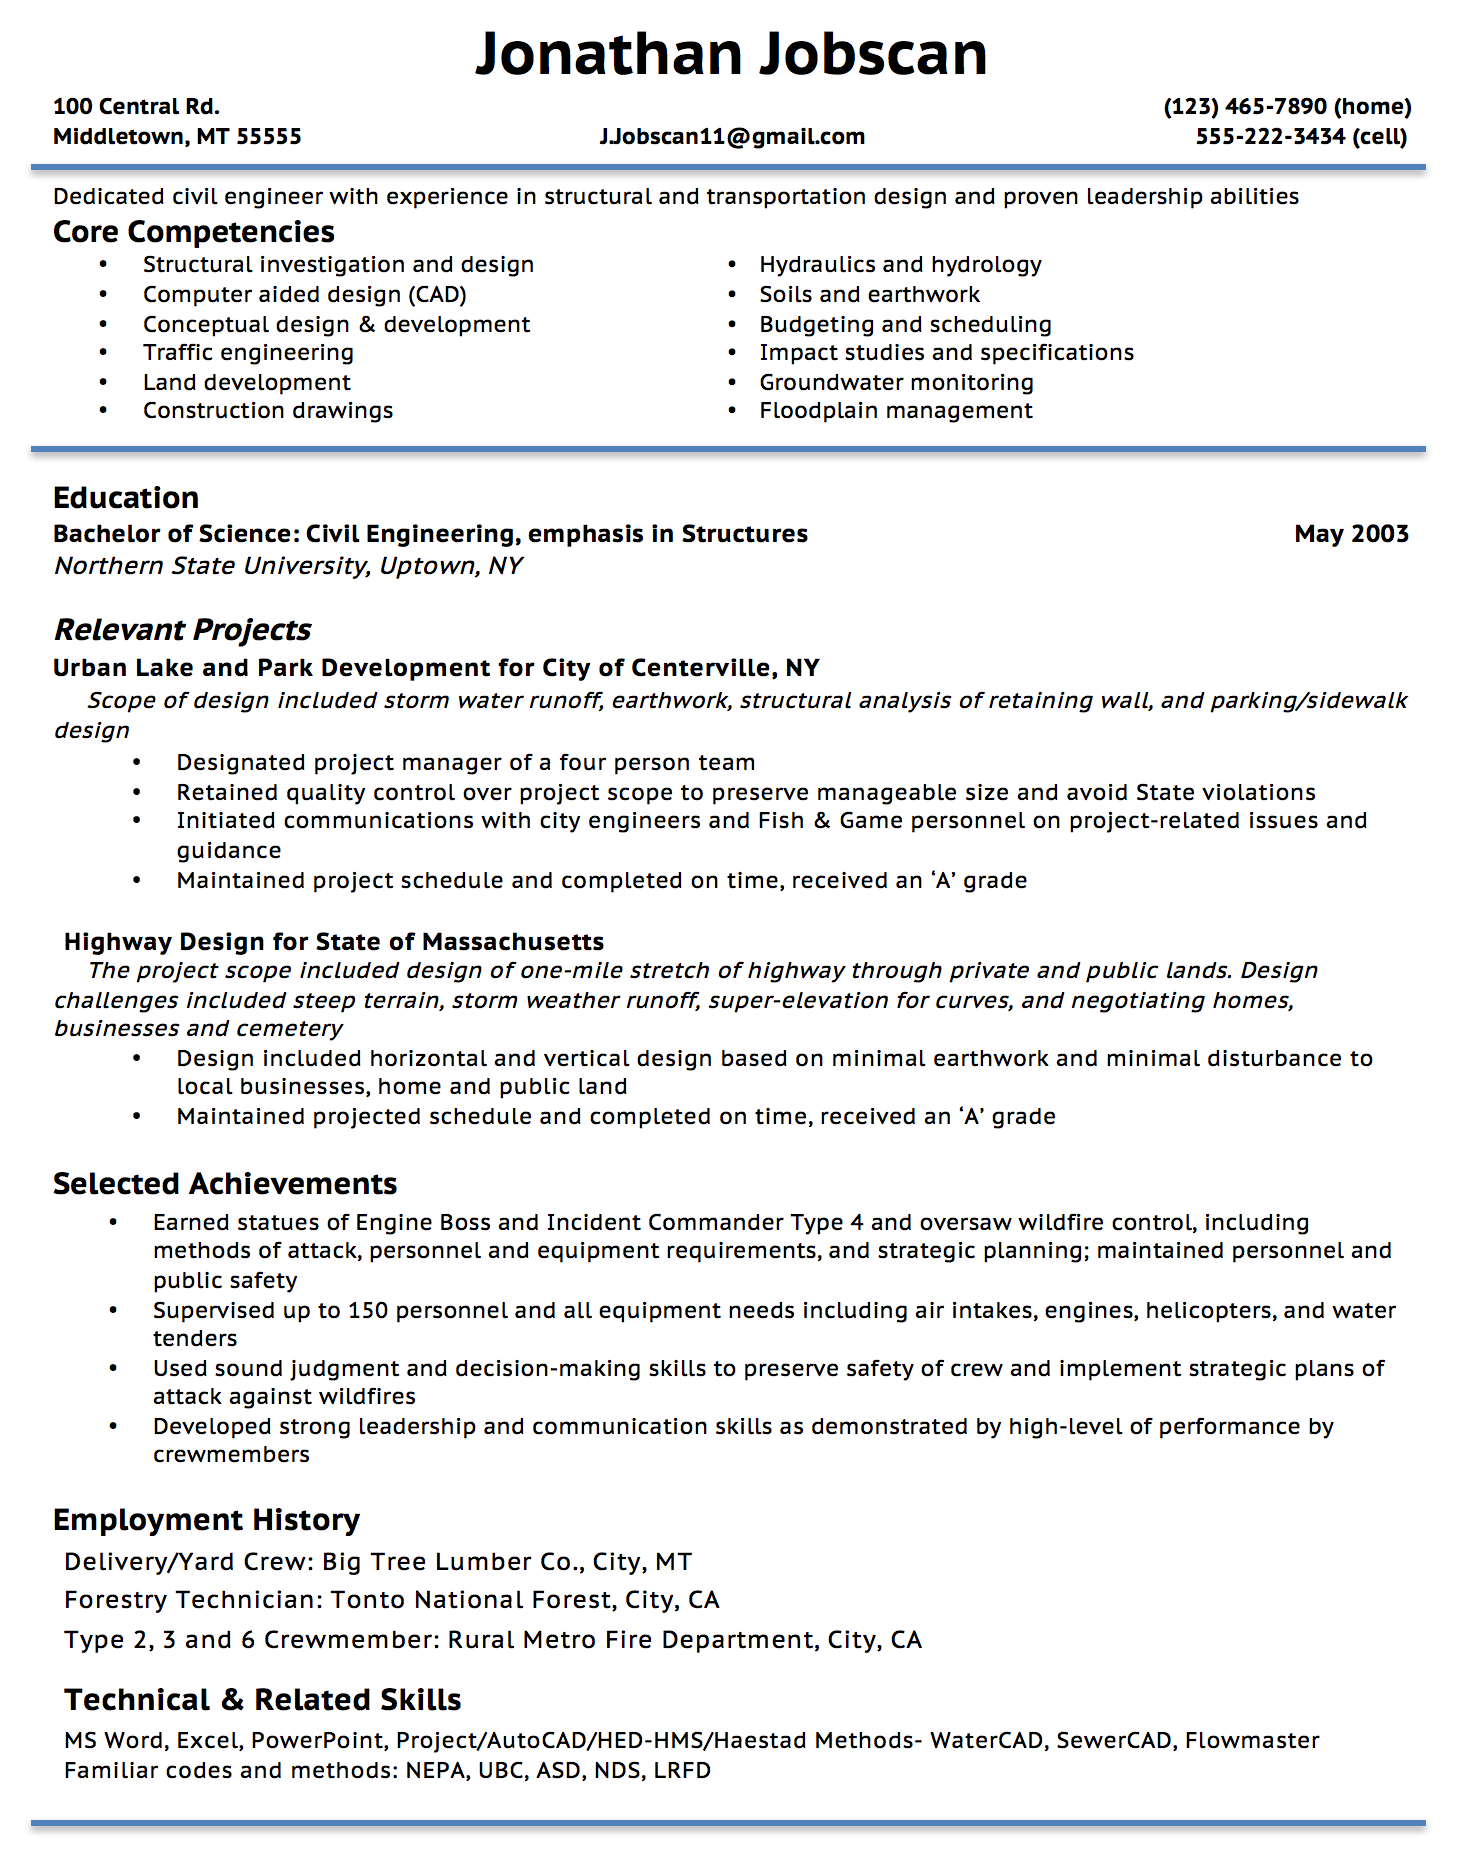 Opposenewapstandardsus  Gorgeous Resume Writing Guide  Jobscan With Magnificent Example Of A Functional Resume Format With Divine How To Put References On Resume Also Bank Teller Resume Sample In Addition Font Size Resume And Does A Resume Have To Be One Page As Well As Create Your Own Resume Additionally Visual Merchandiser Resume From Jobscanco With Opposenewapstandardsus  Magnificent Resume Writing Guide  Jobscan With Divine Example Of A Functional Resume Format And Gorgeous How To Put References On Resume Also Bank Teller Resume Sample In Addition Font Size Resume From Jobscanco